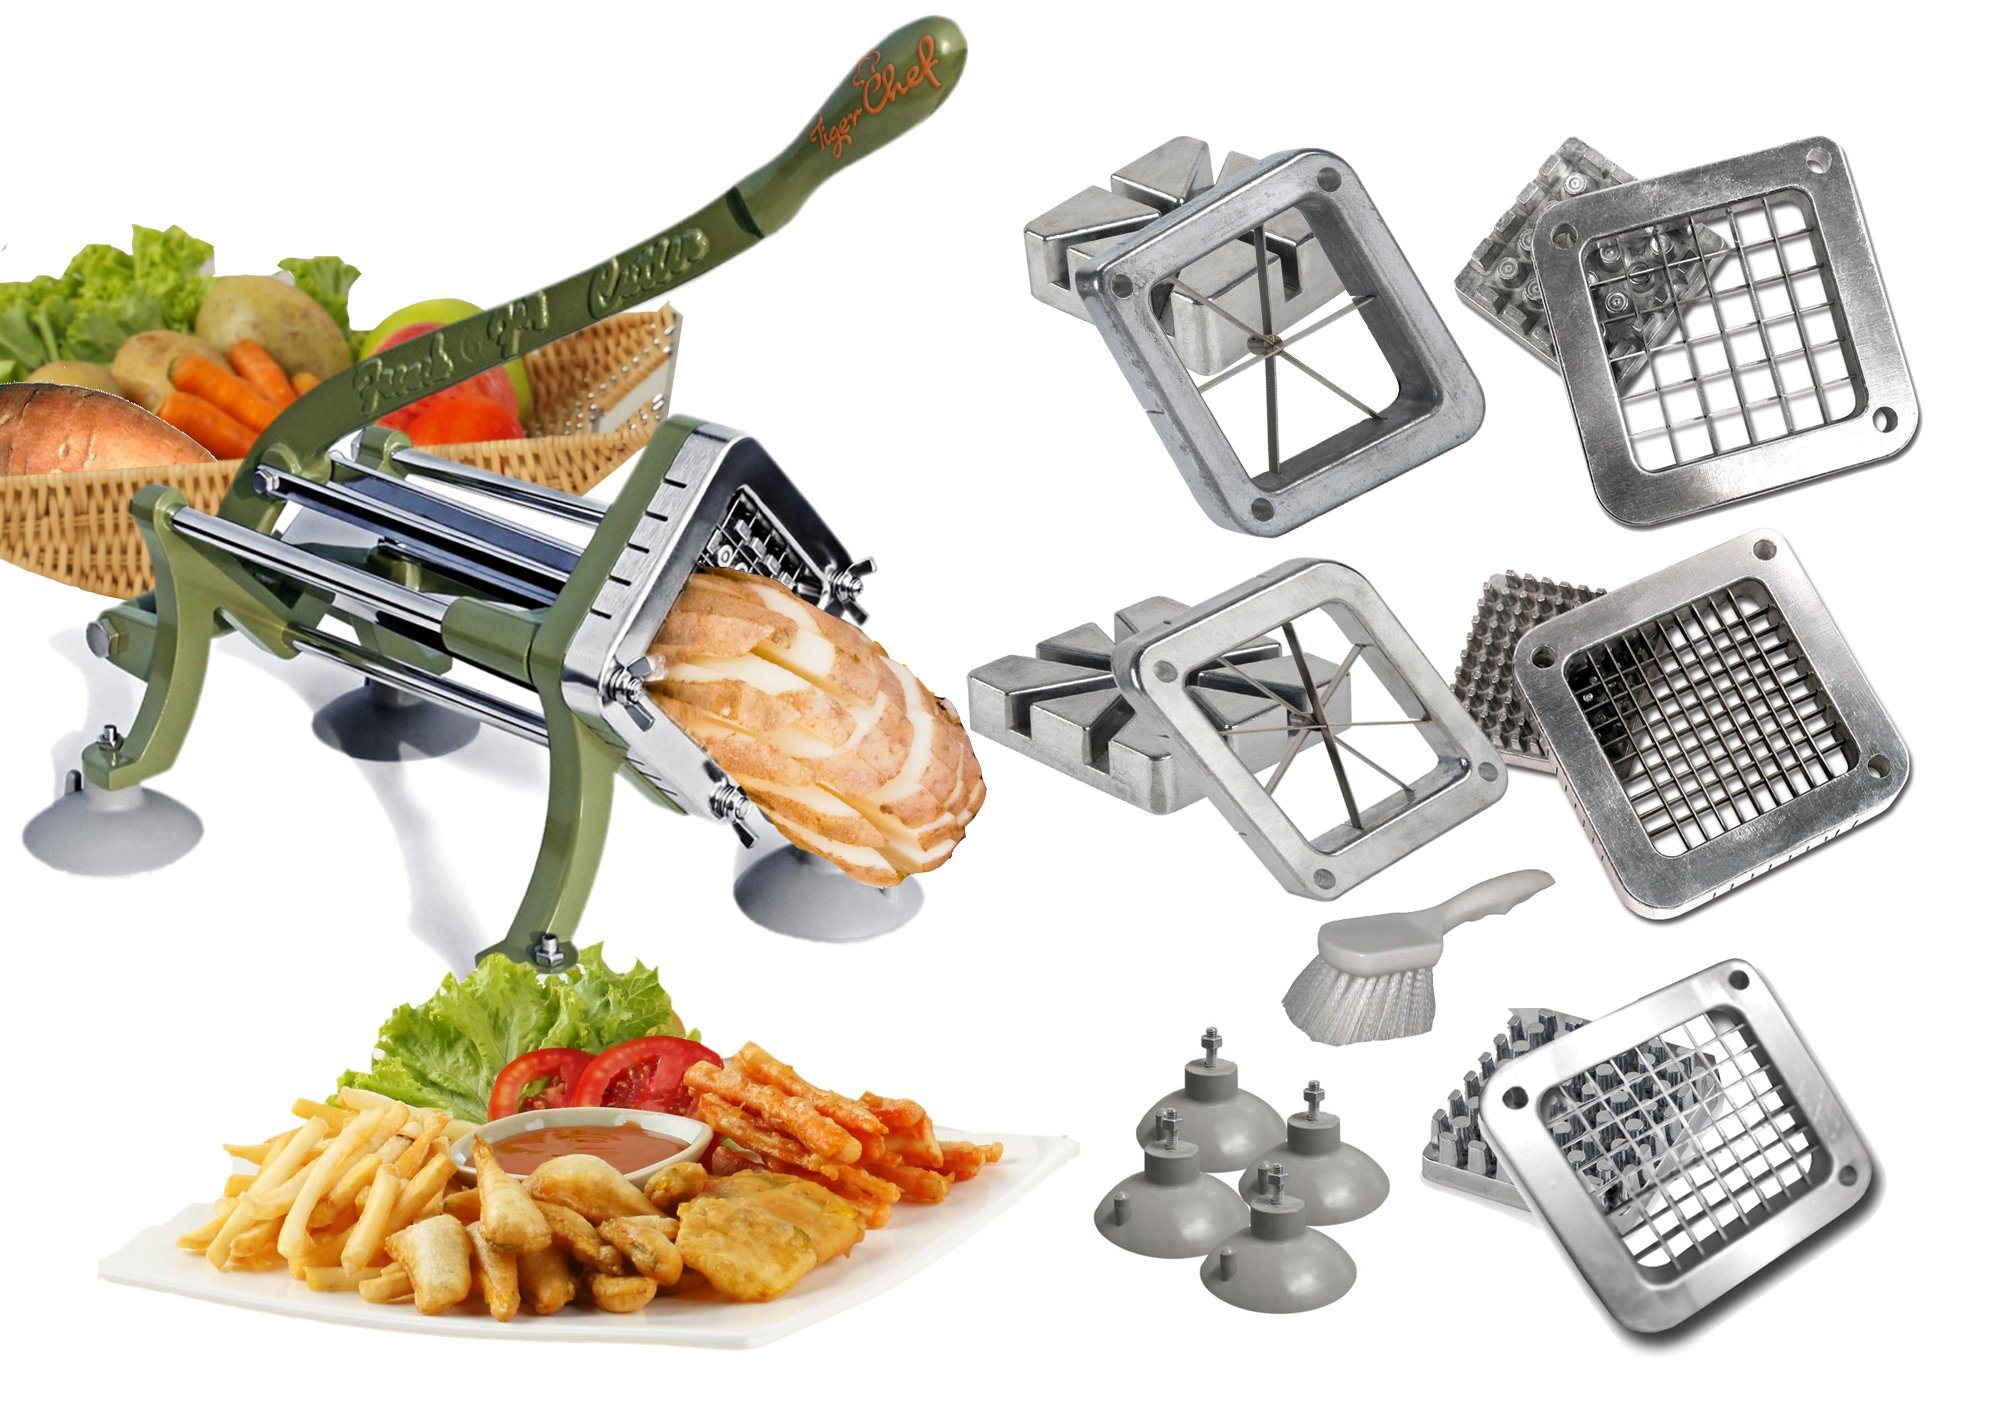 TigerChef commercial french fry cutter Heavy Duty Grade French Fry Cutter with Suction Feet Complete Set, Includes 1/4'', 3/8'', 1/2'', 6'', 8'' Wedge Blade/Pusher Blocks with Cleaning Brush (Pack of 14) by Tiger Chef